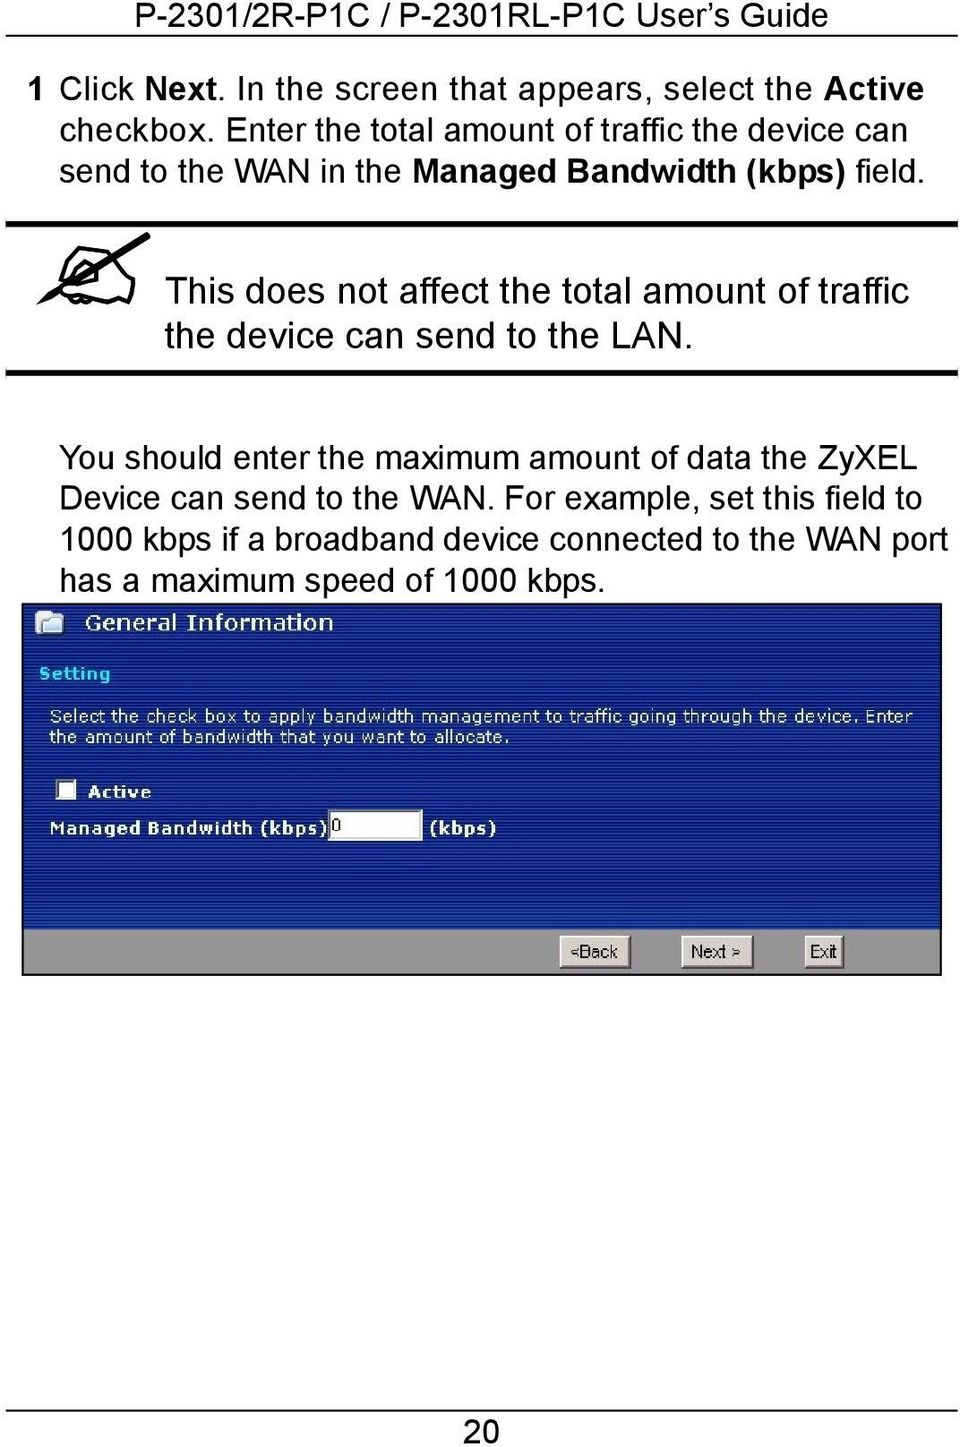 This does not affect the total amount of traffic the device can send to the LAN.